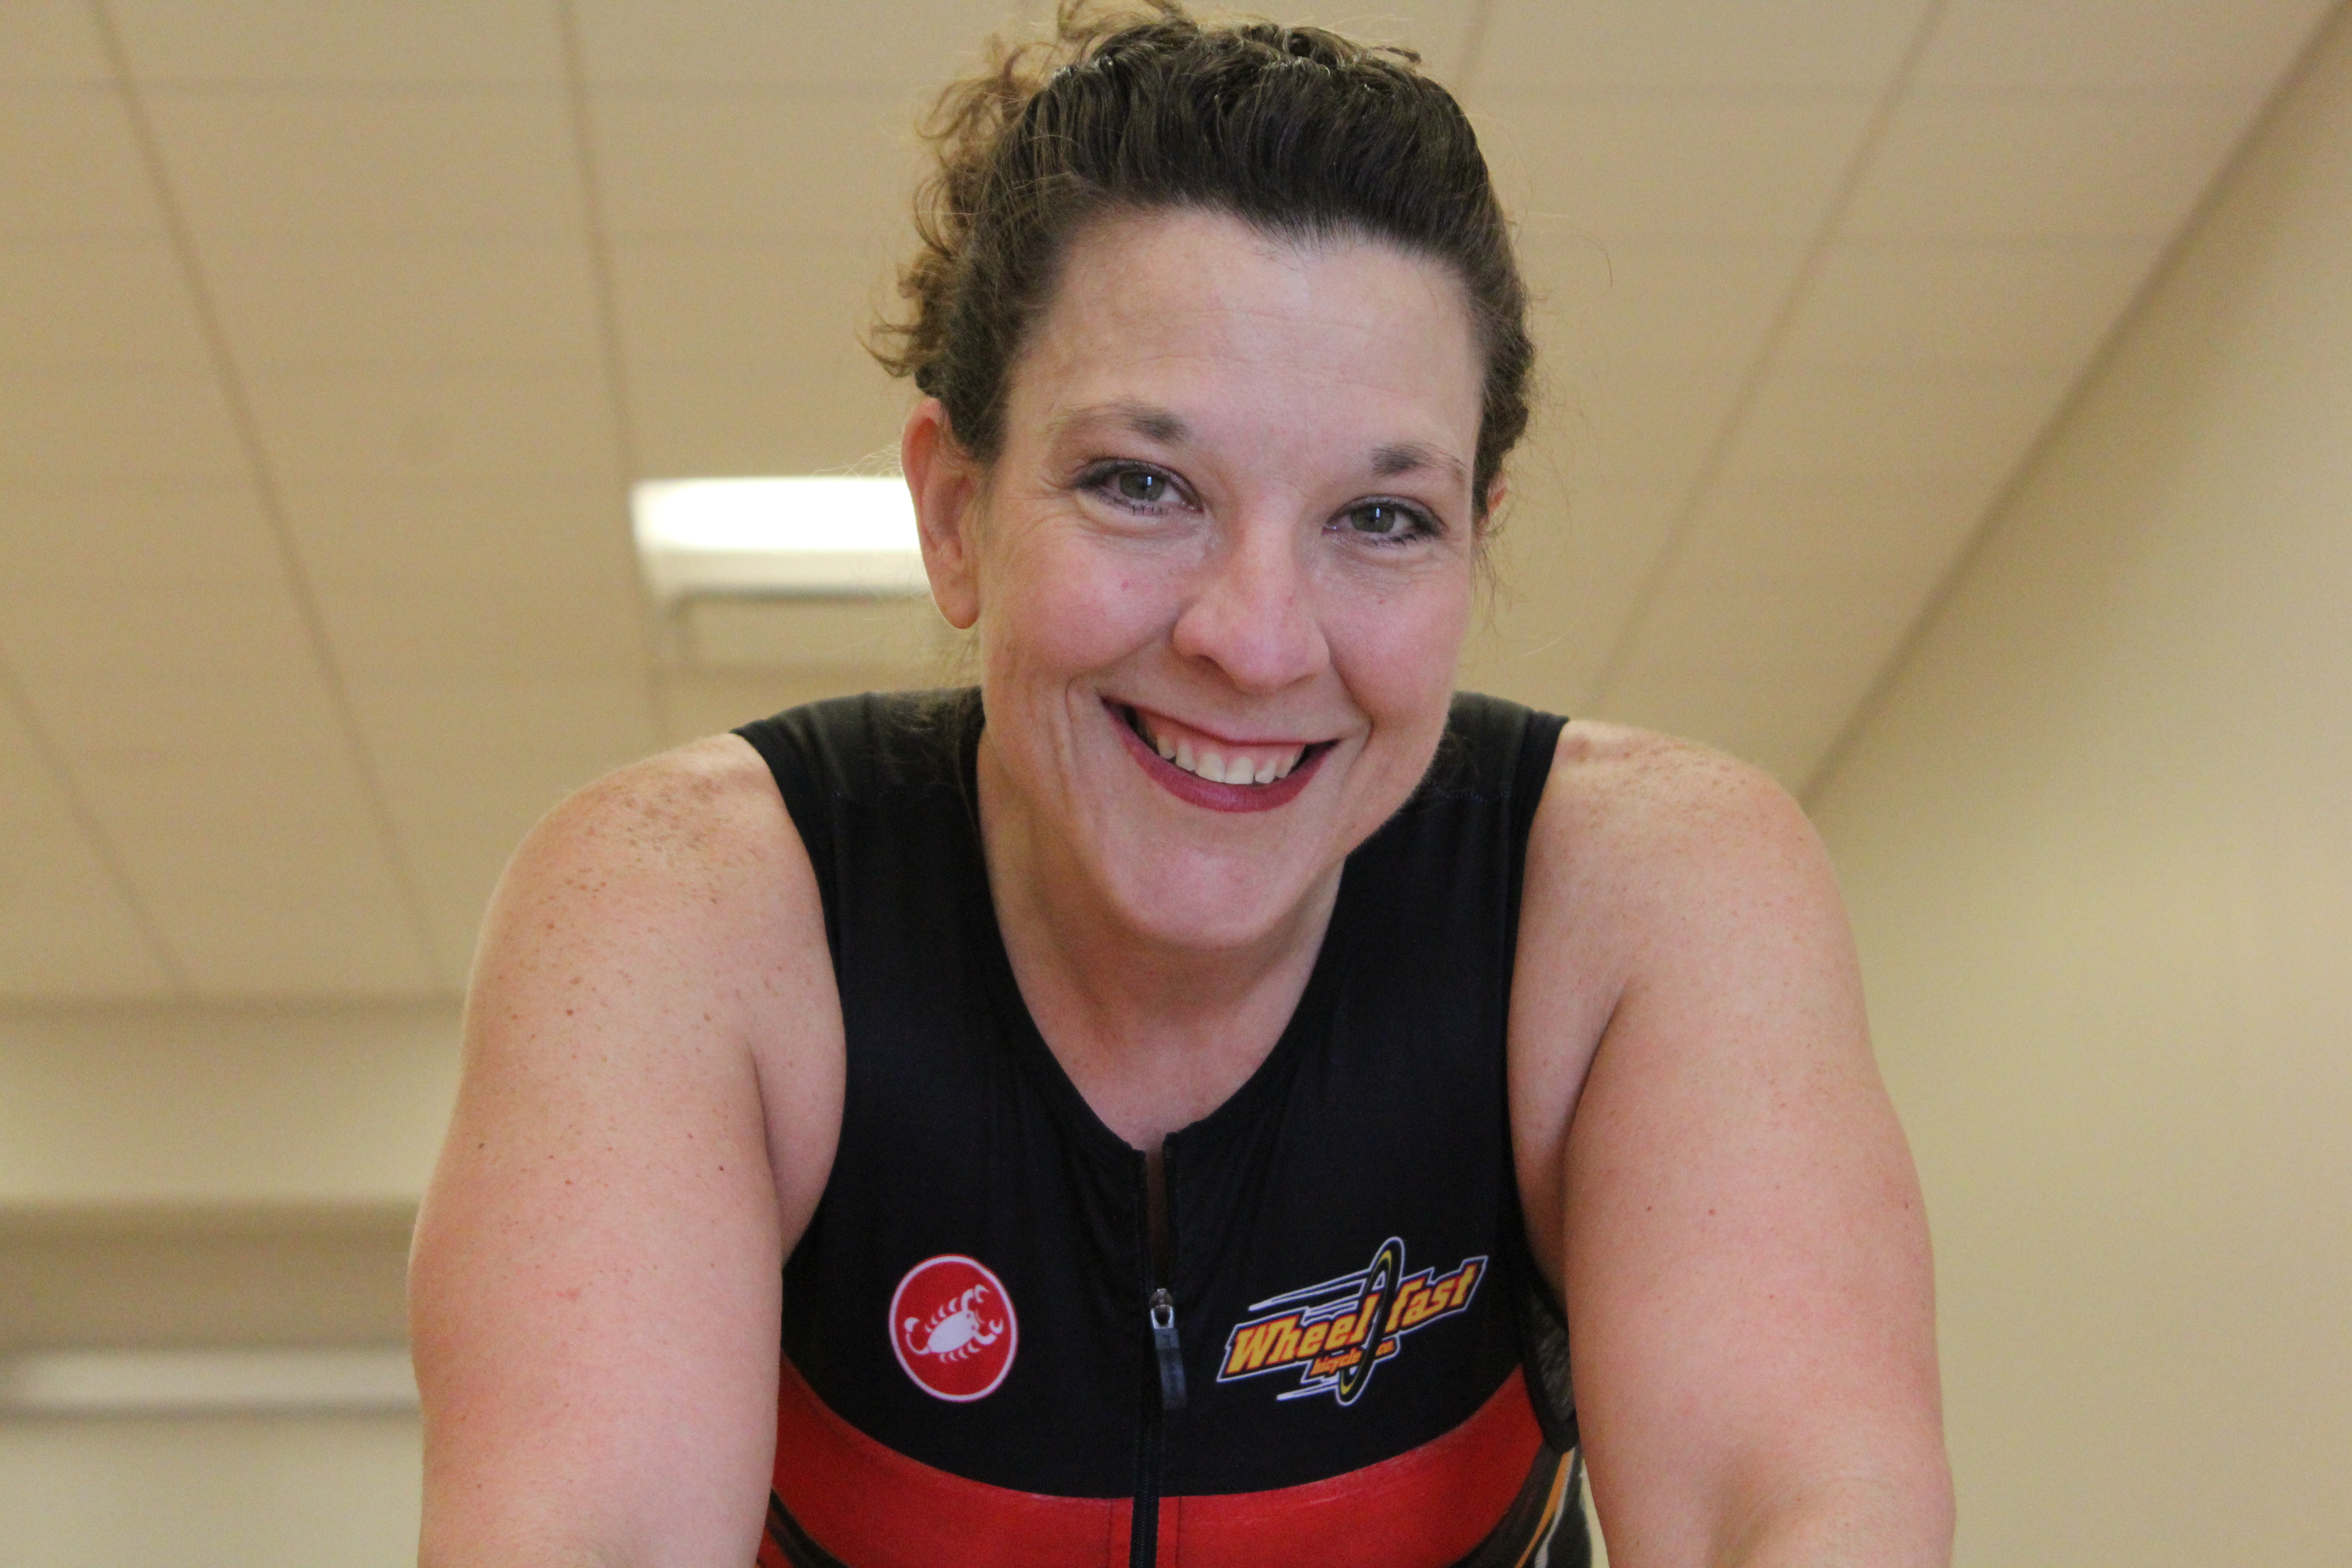 Kimee's Weight Loss Journey Sparks an Inspired Life of Elite Athletics